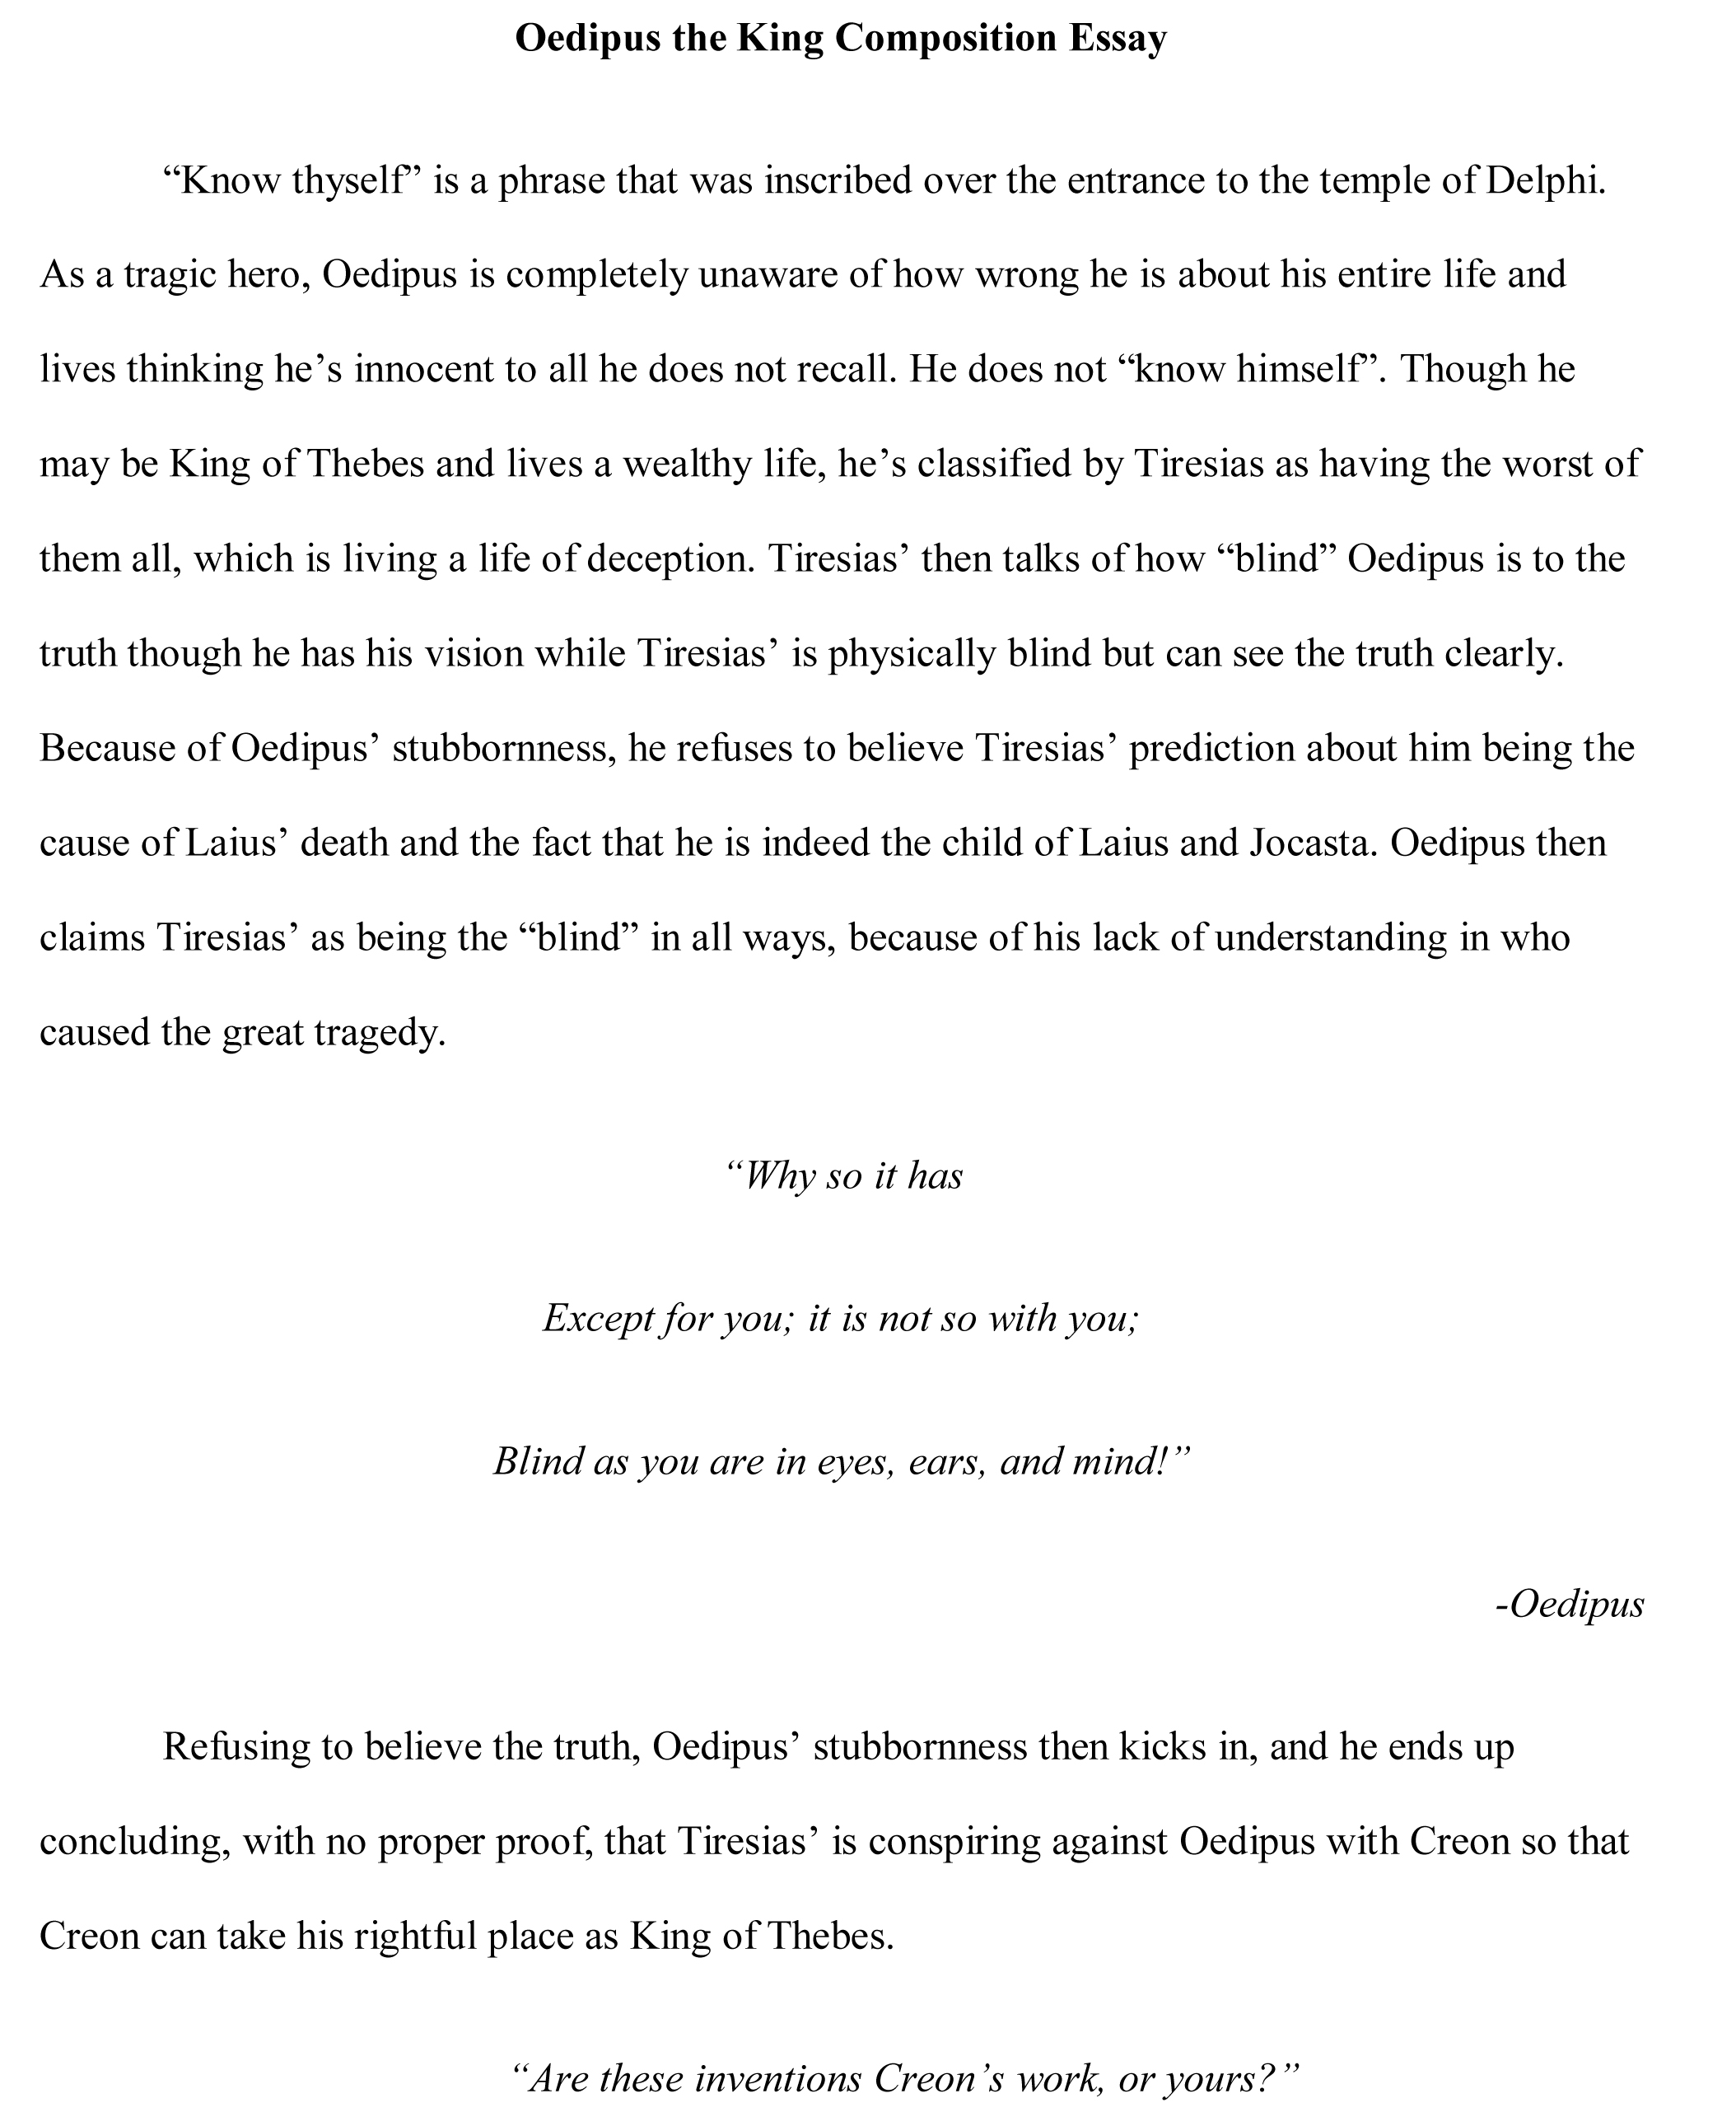 005 Oedipus Essay Free Sample Topics For An Unbelievable Interesting Expository Full